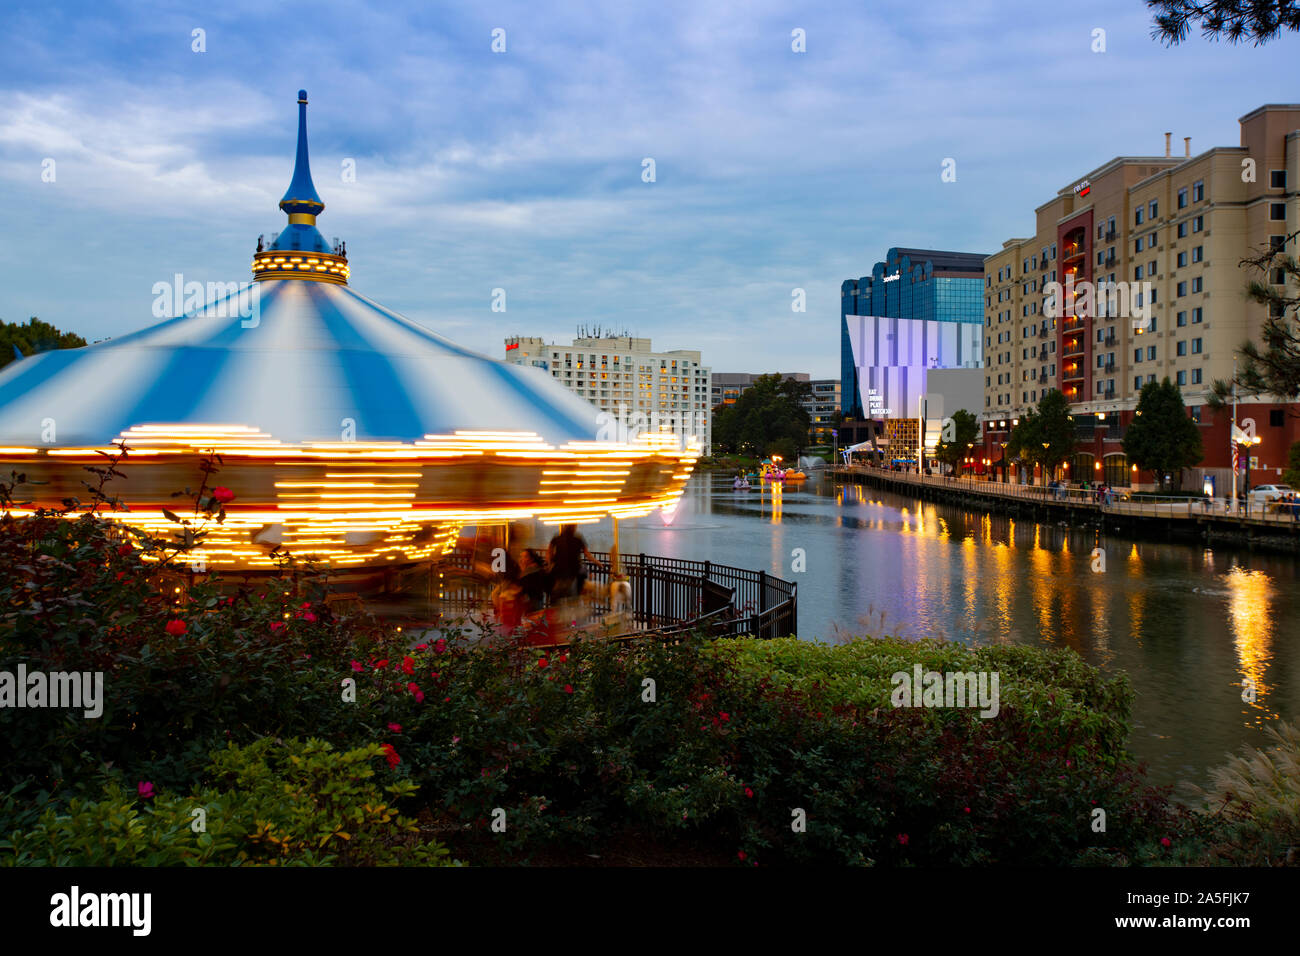 usa-maryland-md-montgomery-county-gaithersburg-rio-at-washingtonian-center-with-a-carousel-shopping-dining-movies-entertainment-by-a-lake-2A5FJK7.jpg